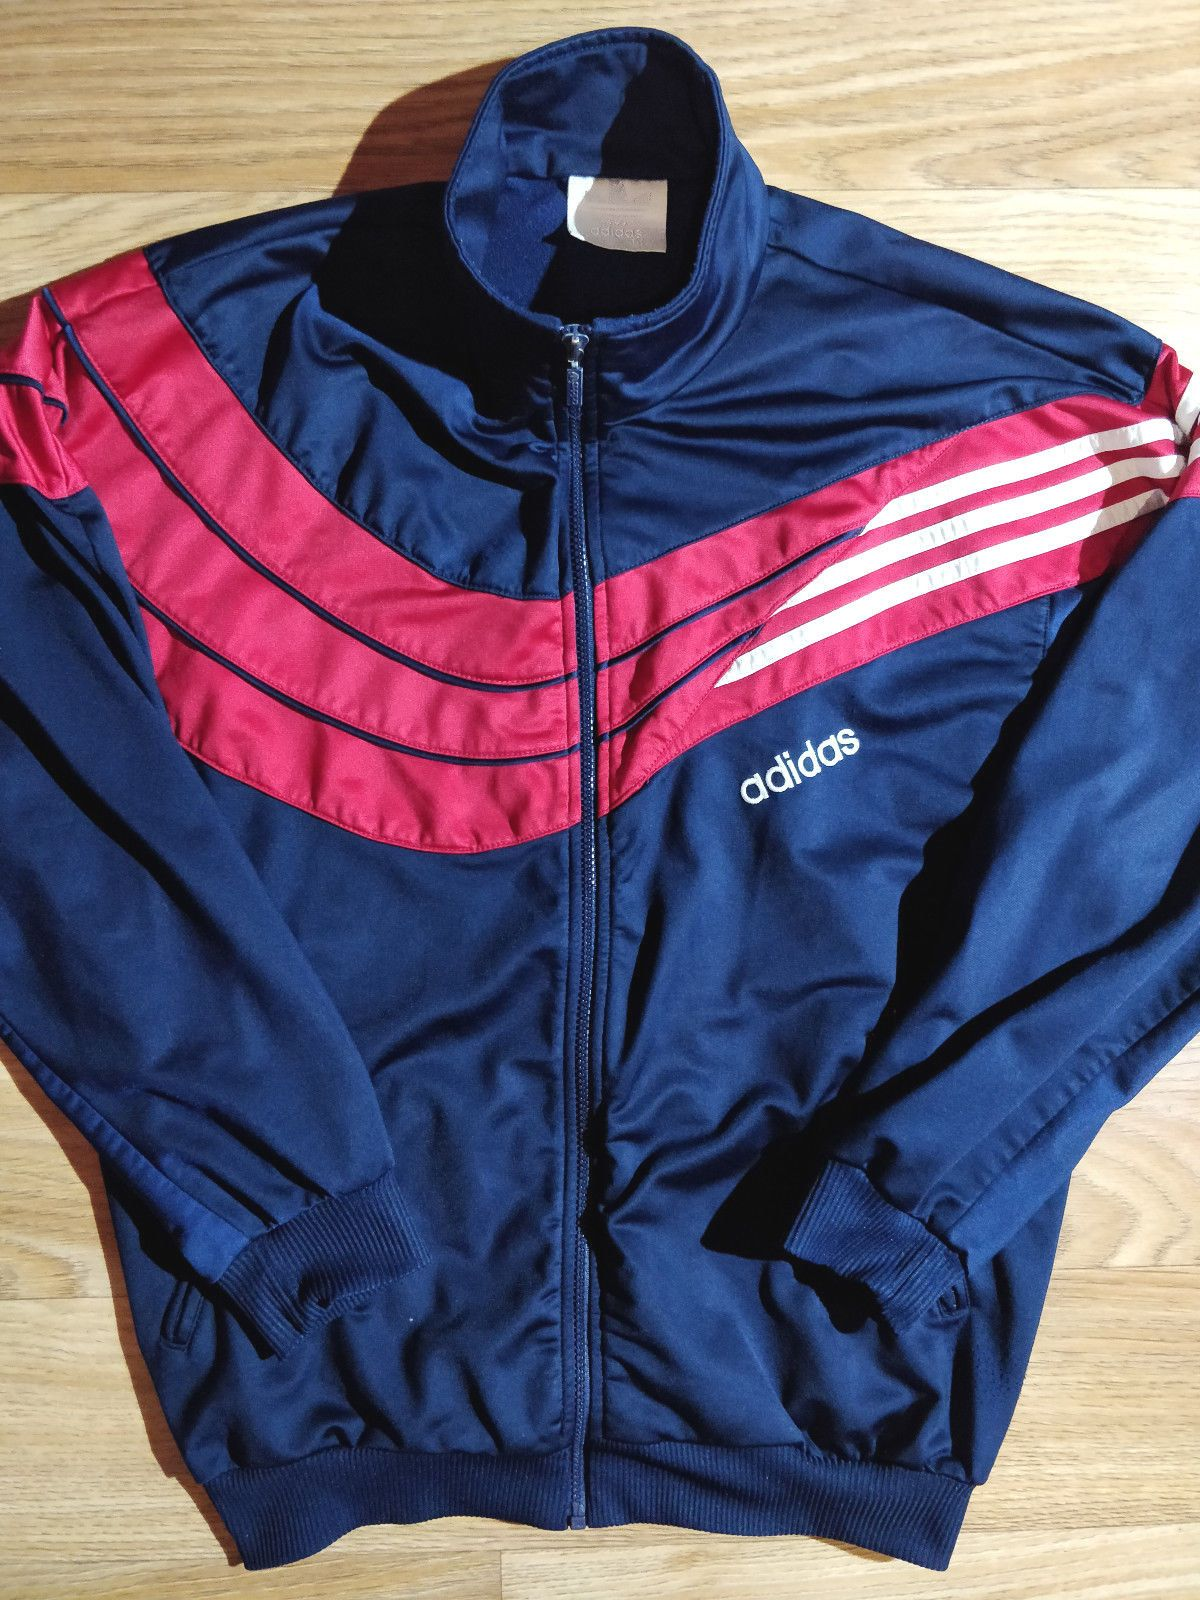 d1038abd40d1 Adidas Originals 90 s Vintage Mens Tracksuit Top Jacket Navy Blue Red